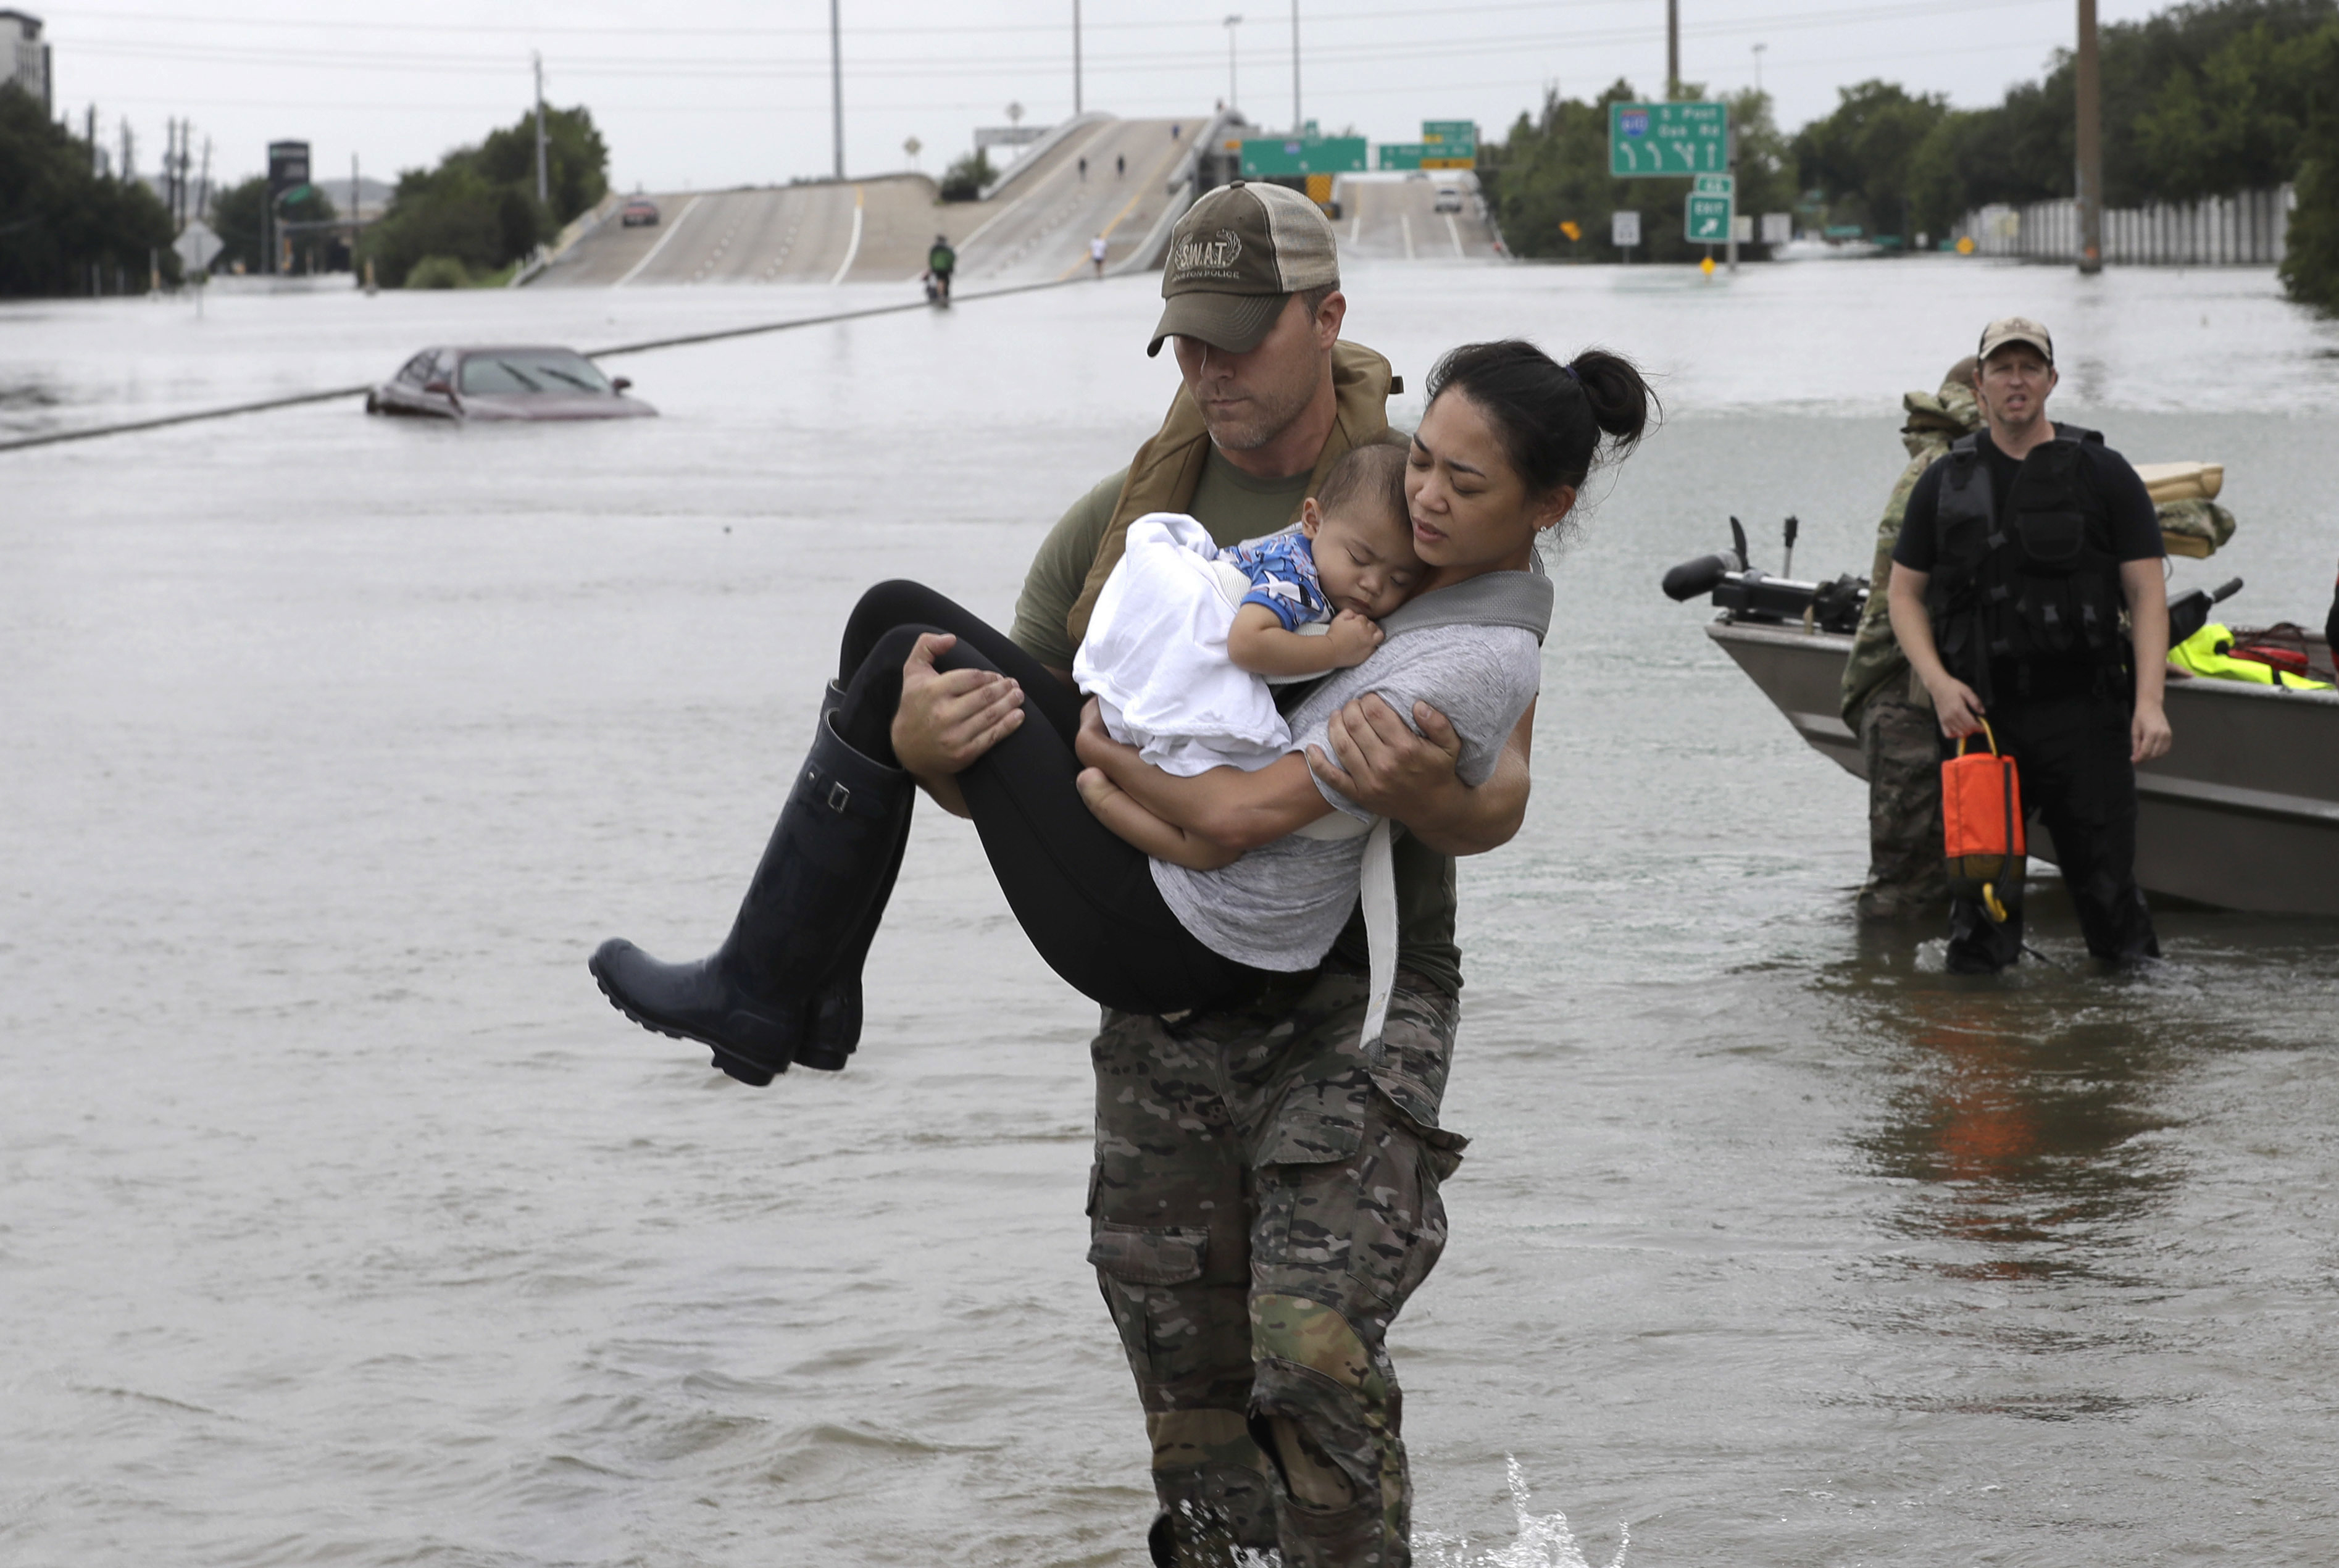 Hurricane Harvey: How Twitter Responded to Sexist Tweet | Fortune